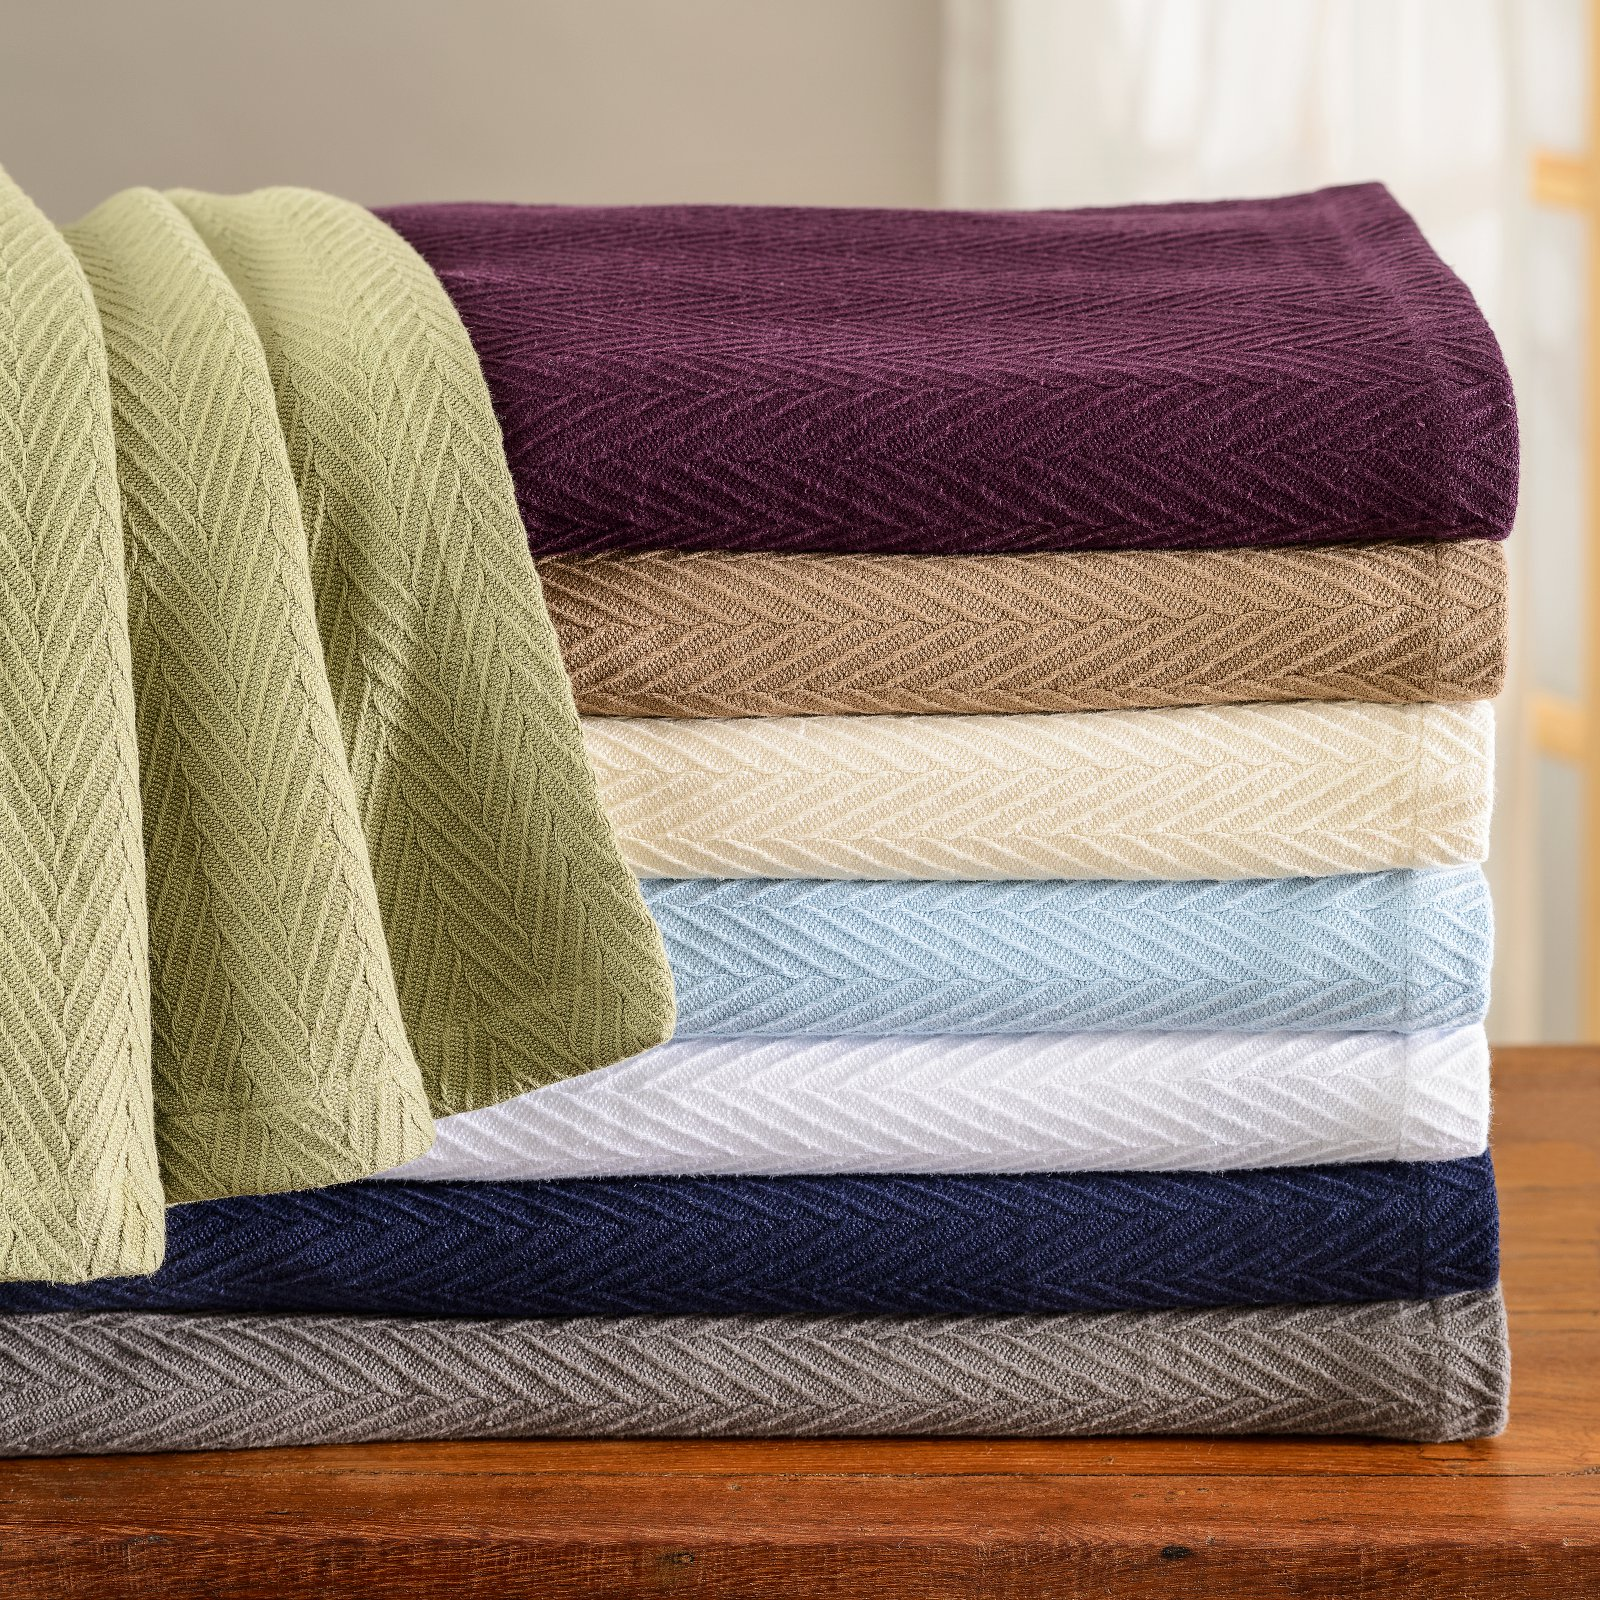 Impressions Cotton Metro Weave Blanket by Home City Inc